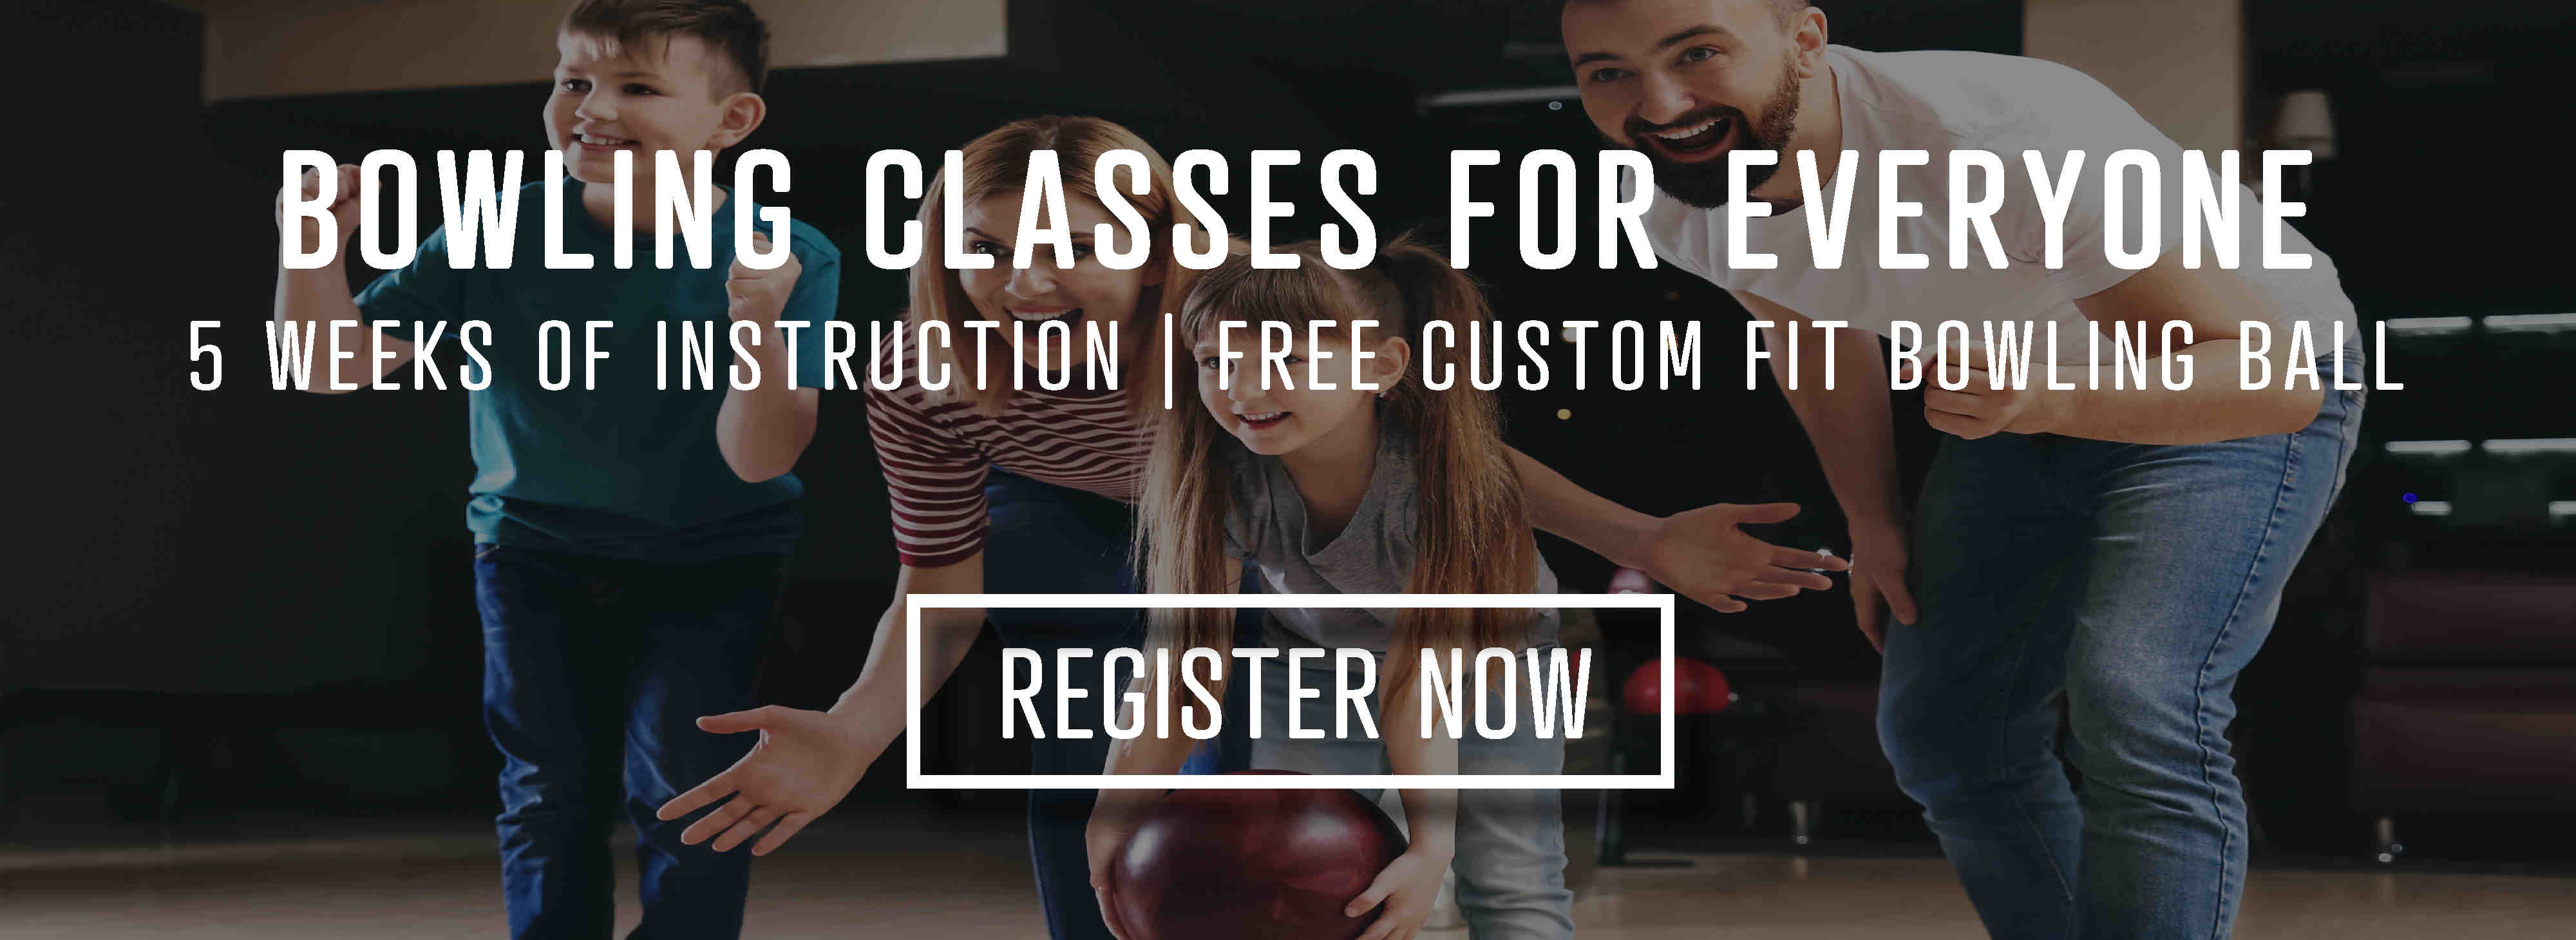 Bowling Classes for Everyone